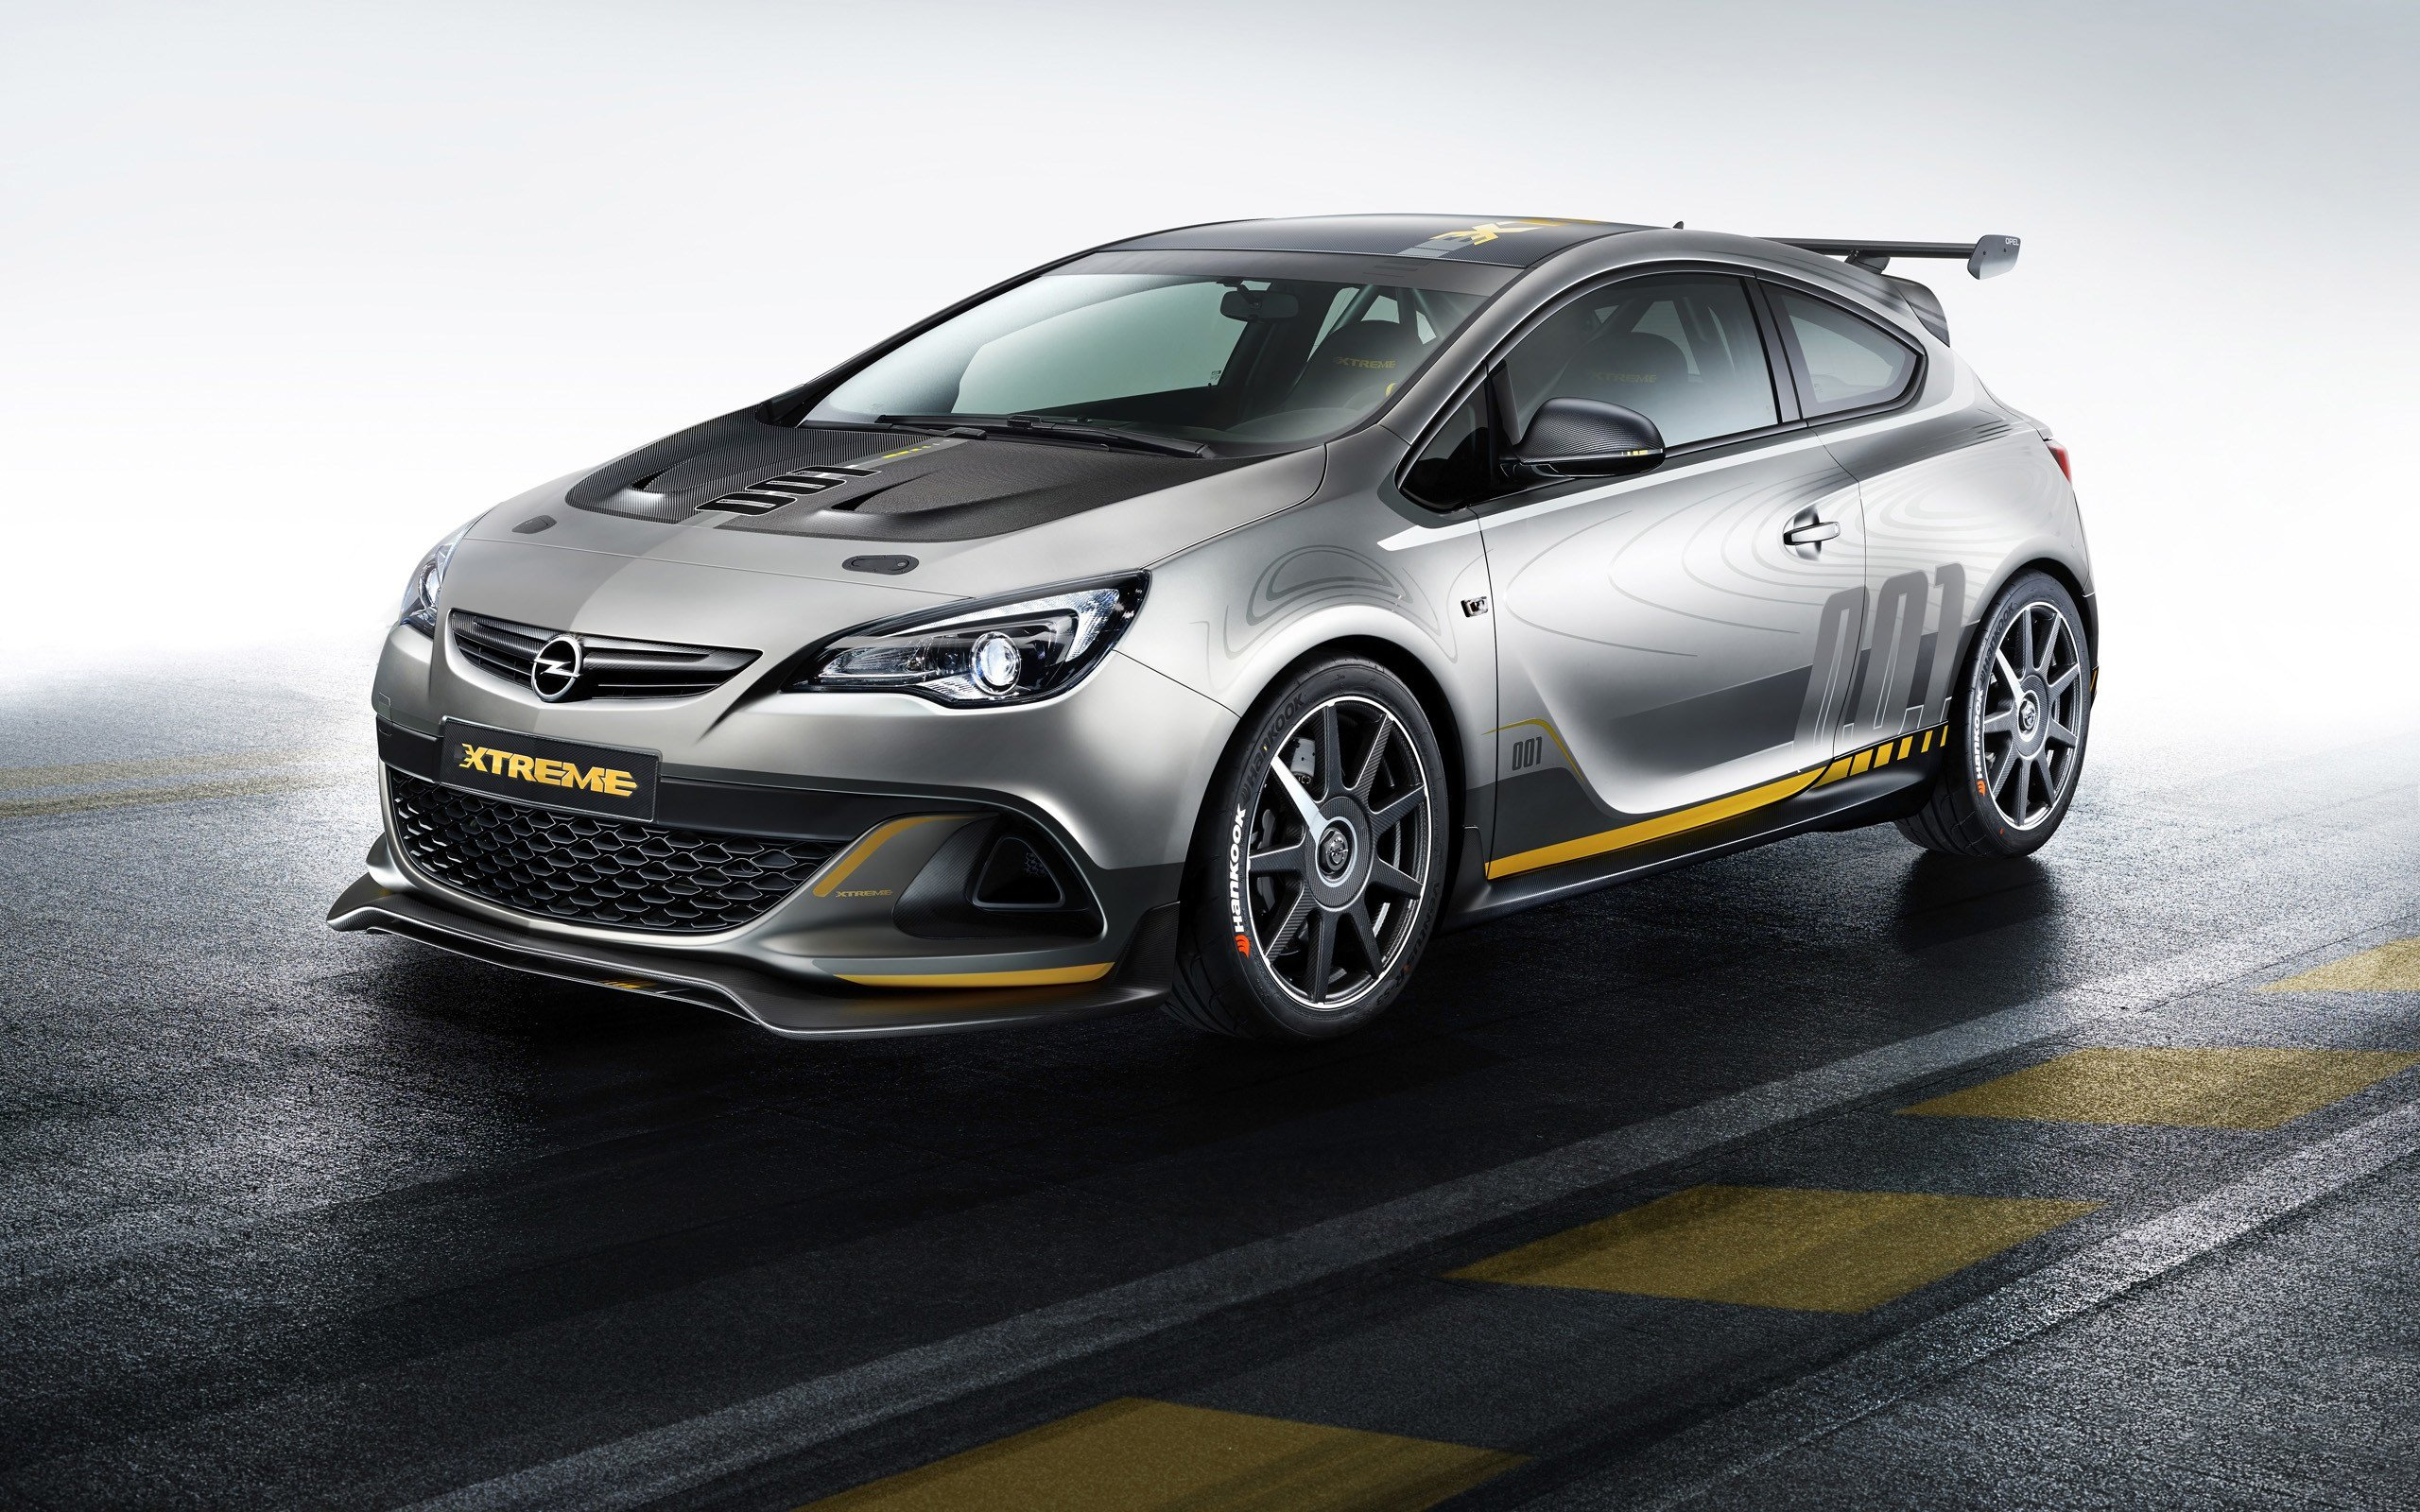 Latest 2014 Opel Astra Opc Extreme Wallpaper Hd Car Wallpapers Free Download